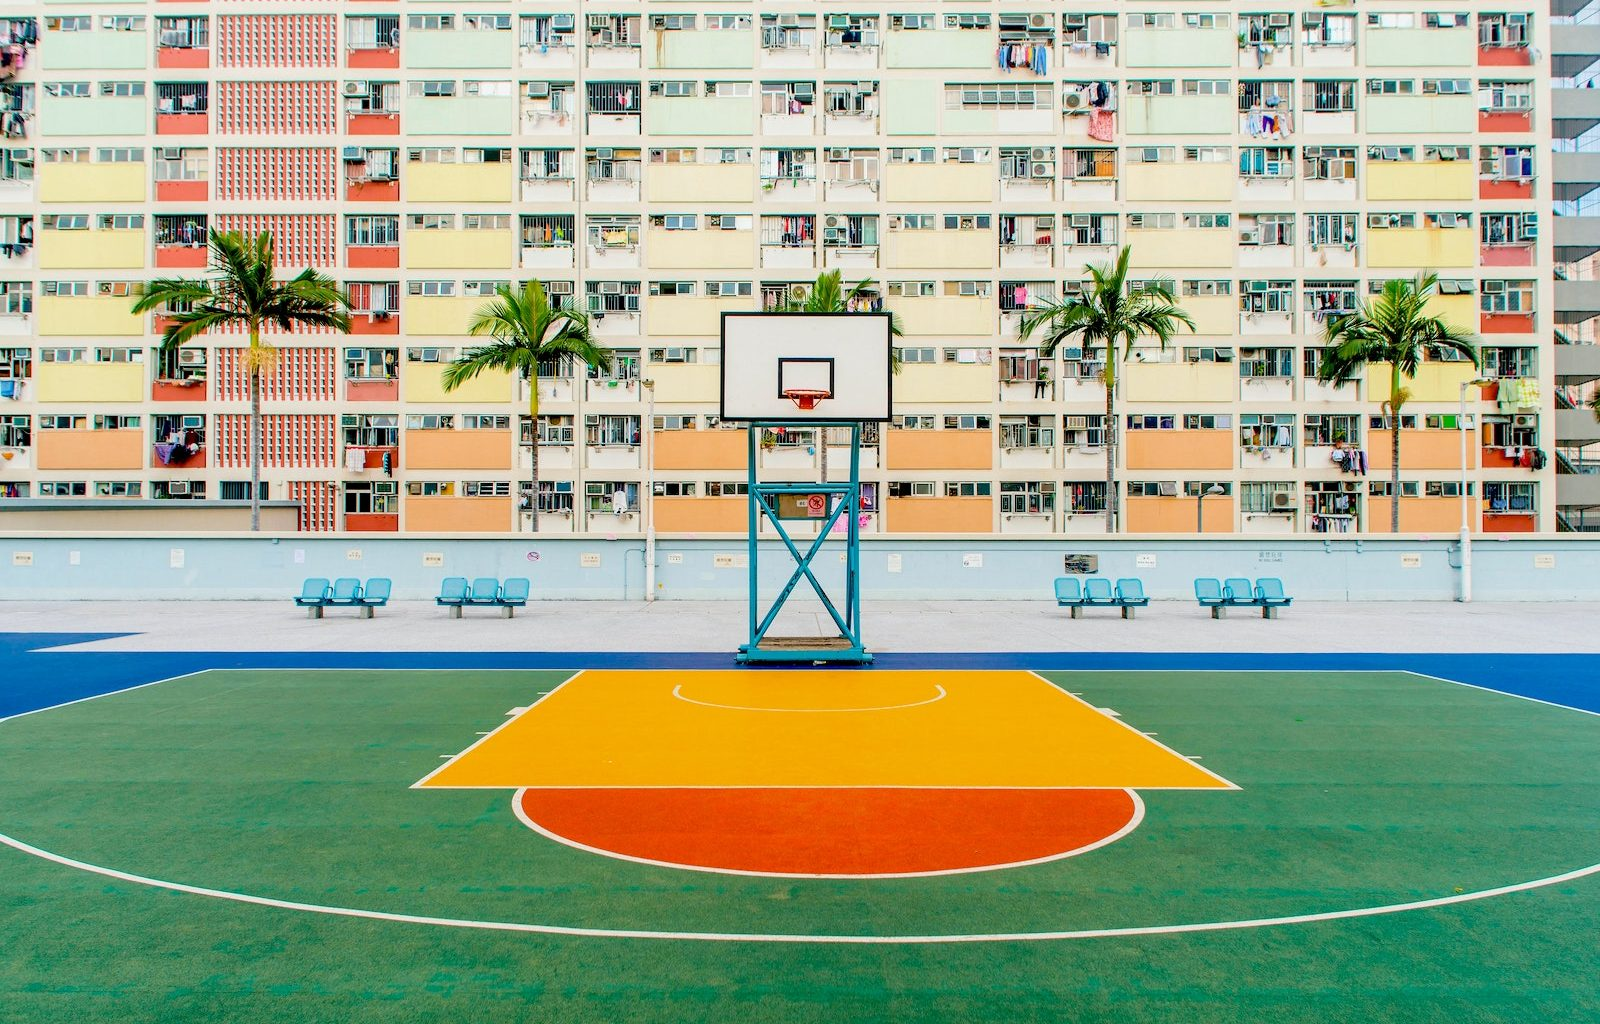 Painting a concrete basketball court